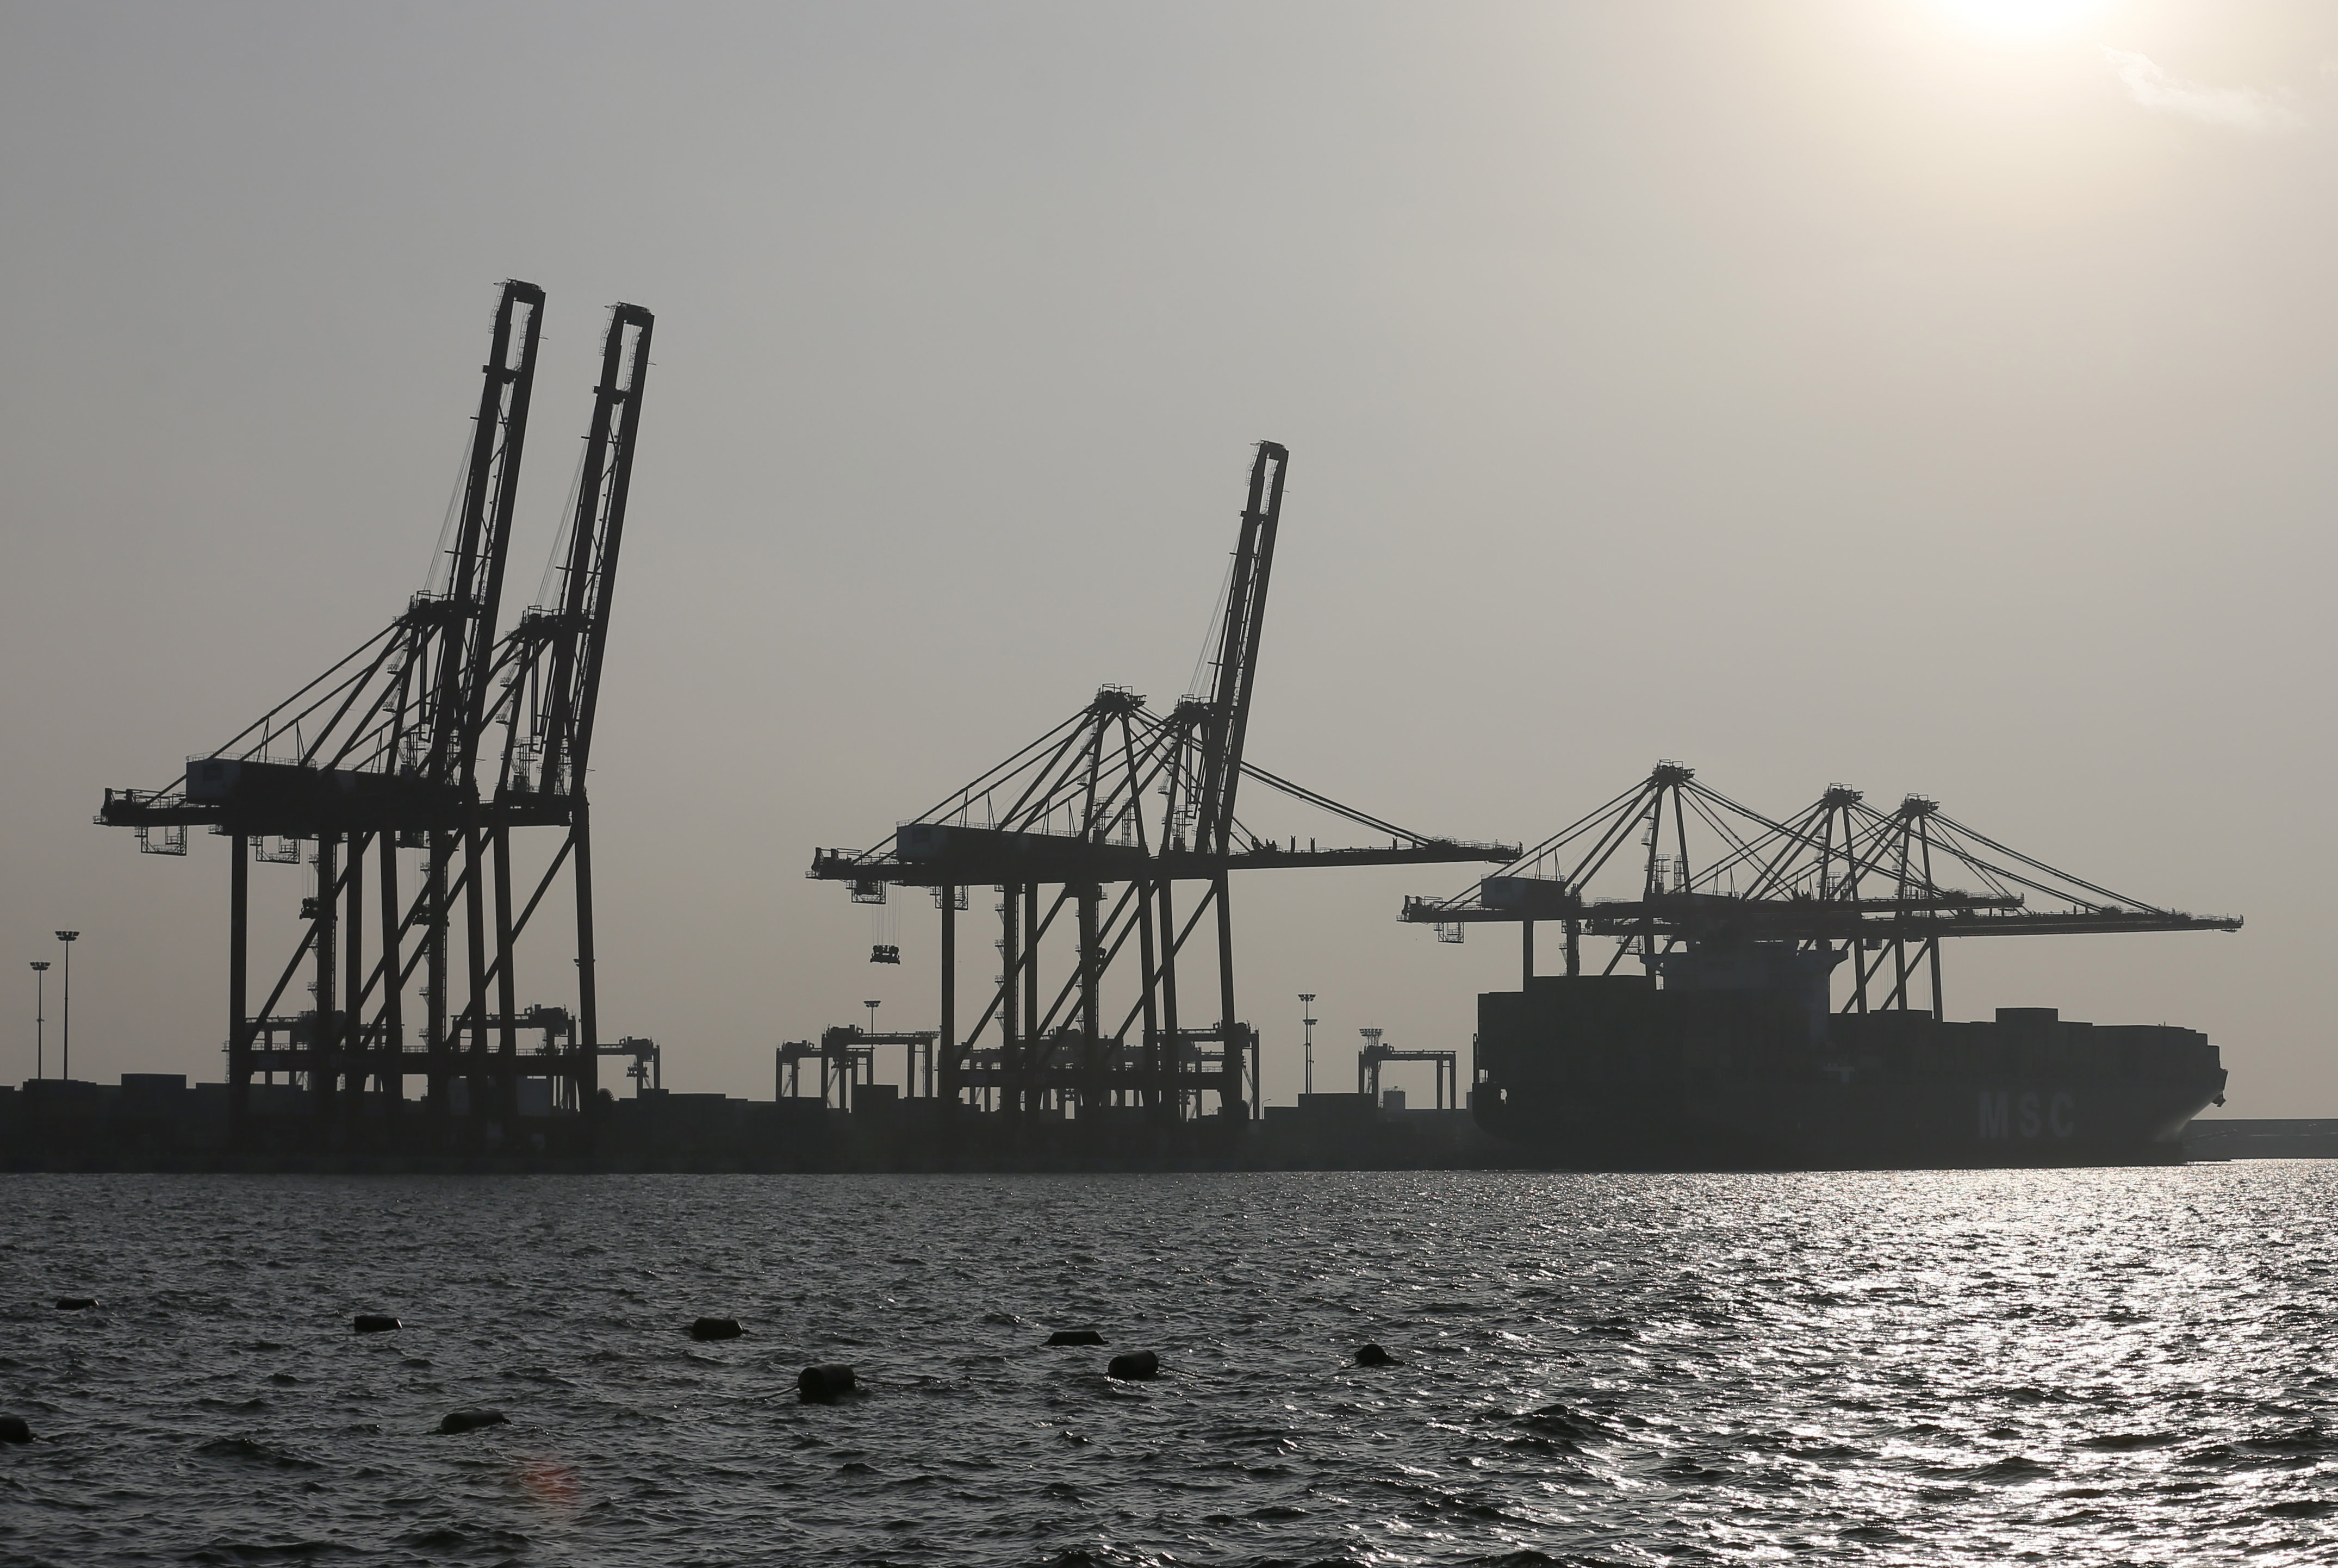 A container ship is pictured docked at Sri Lanka's Colombo South Harbor, funded by China, on Jan. 21, 2016